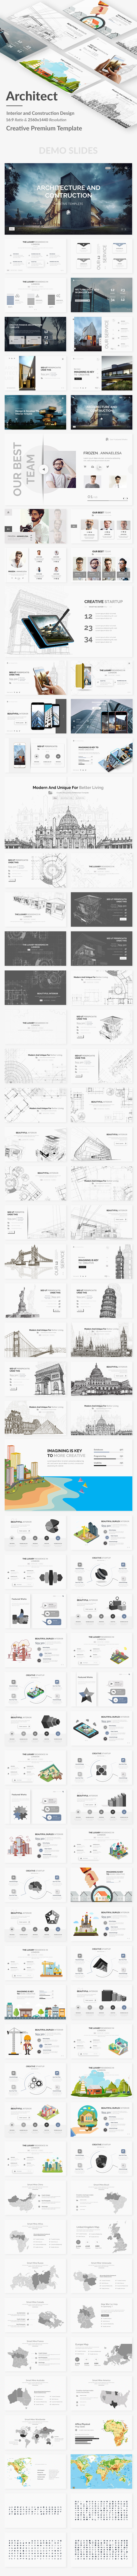 Architecture Interior and Construction Design Keynote Template - Creative Keynote Templates